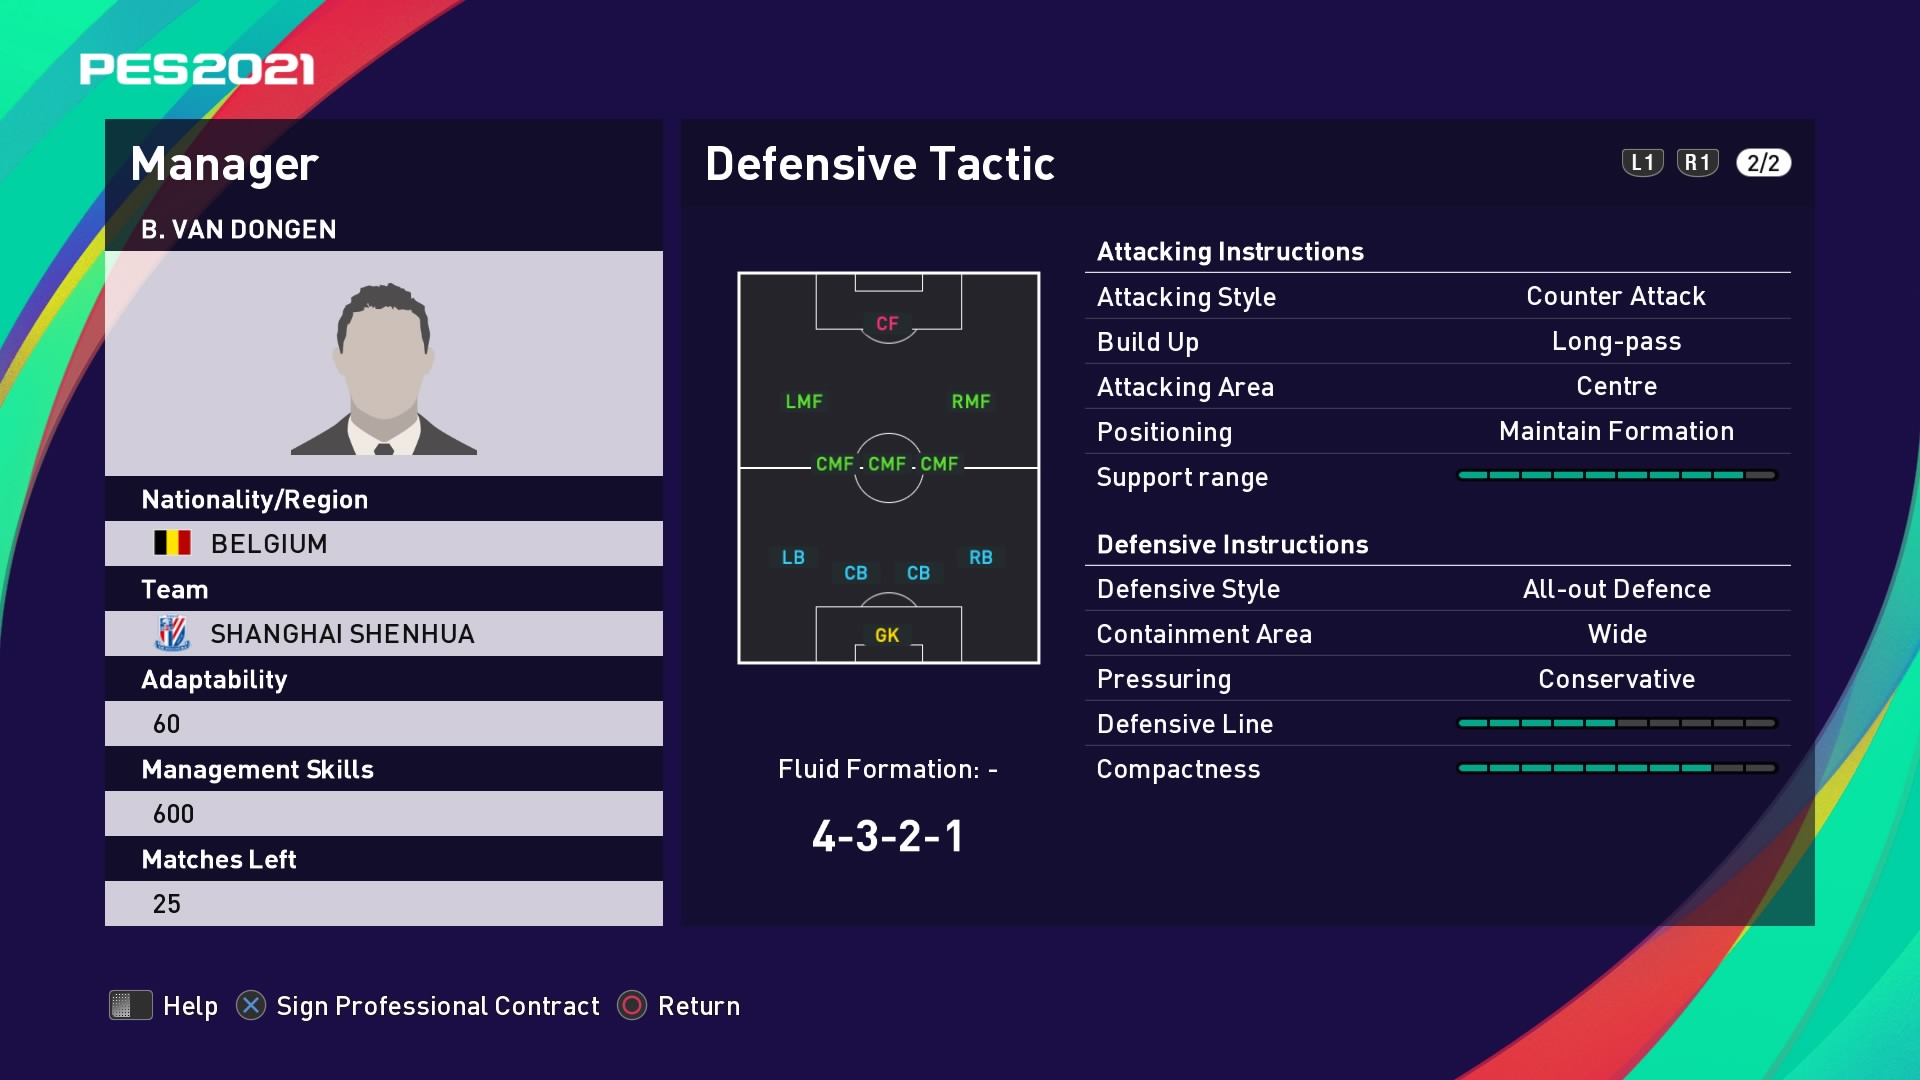 B. Van Dongen Defensive Tactic in PES 2021 myClub